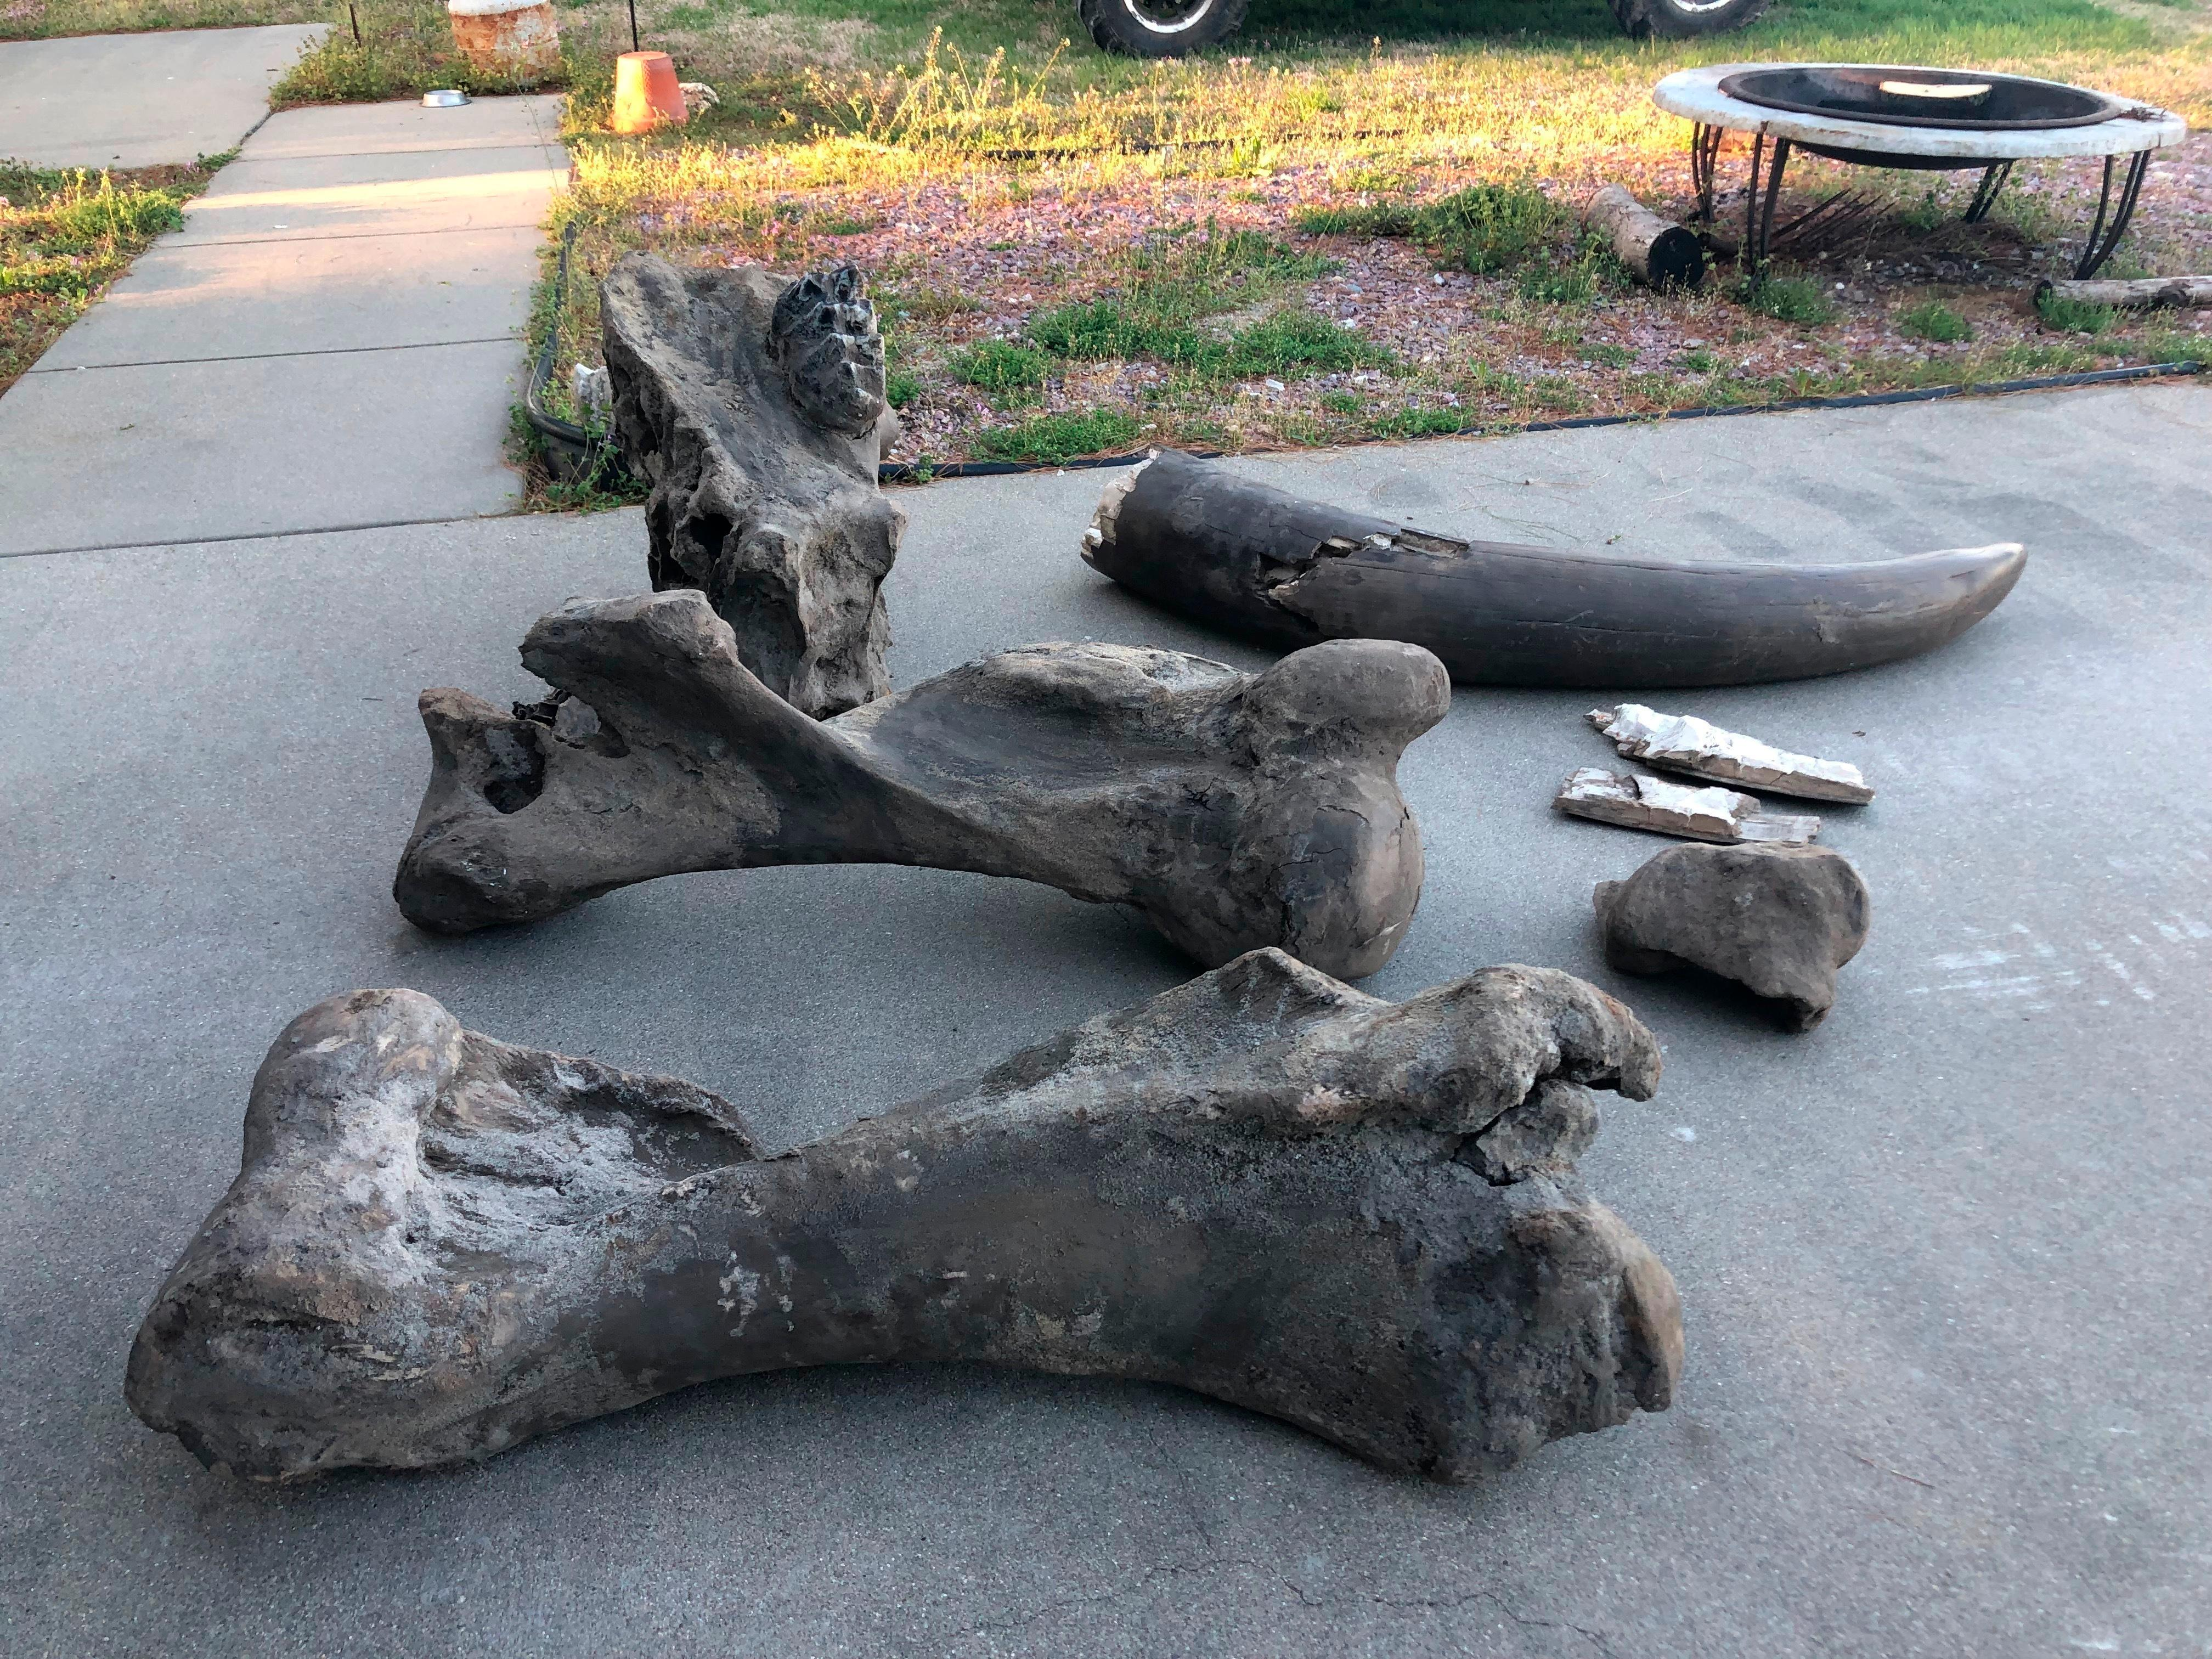 This April 15, 2019 photo shows remains of a mastodon found on a private property in Seymour, Ind. Atlas Excavating recently discovered the remains of a mastodon on property owned by Schepman.  The remains include the majority of a tusk, part of a jawbone with teeth, two upper leg bones, a vertebrae, a joint and part of the skull. The tusk was split into two pieces and together made up about a third of the tusk.  (Jordan Richart/The Tribune via AP)